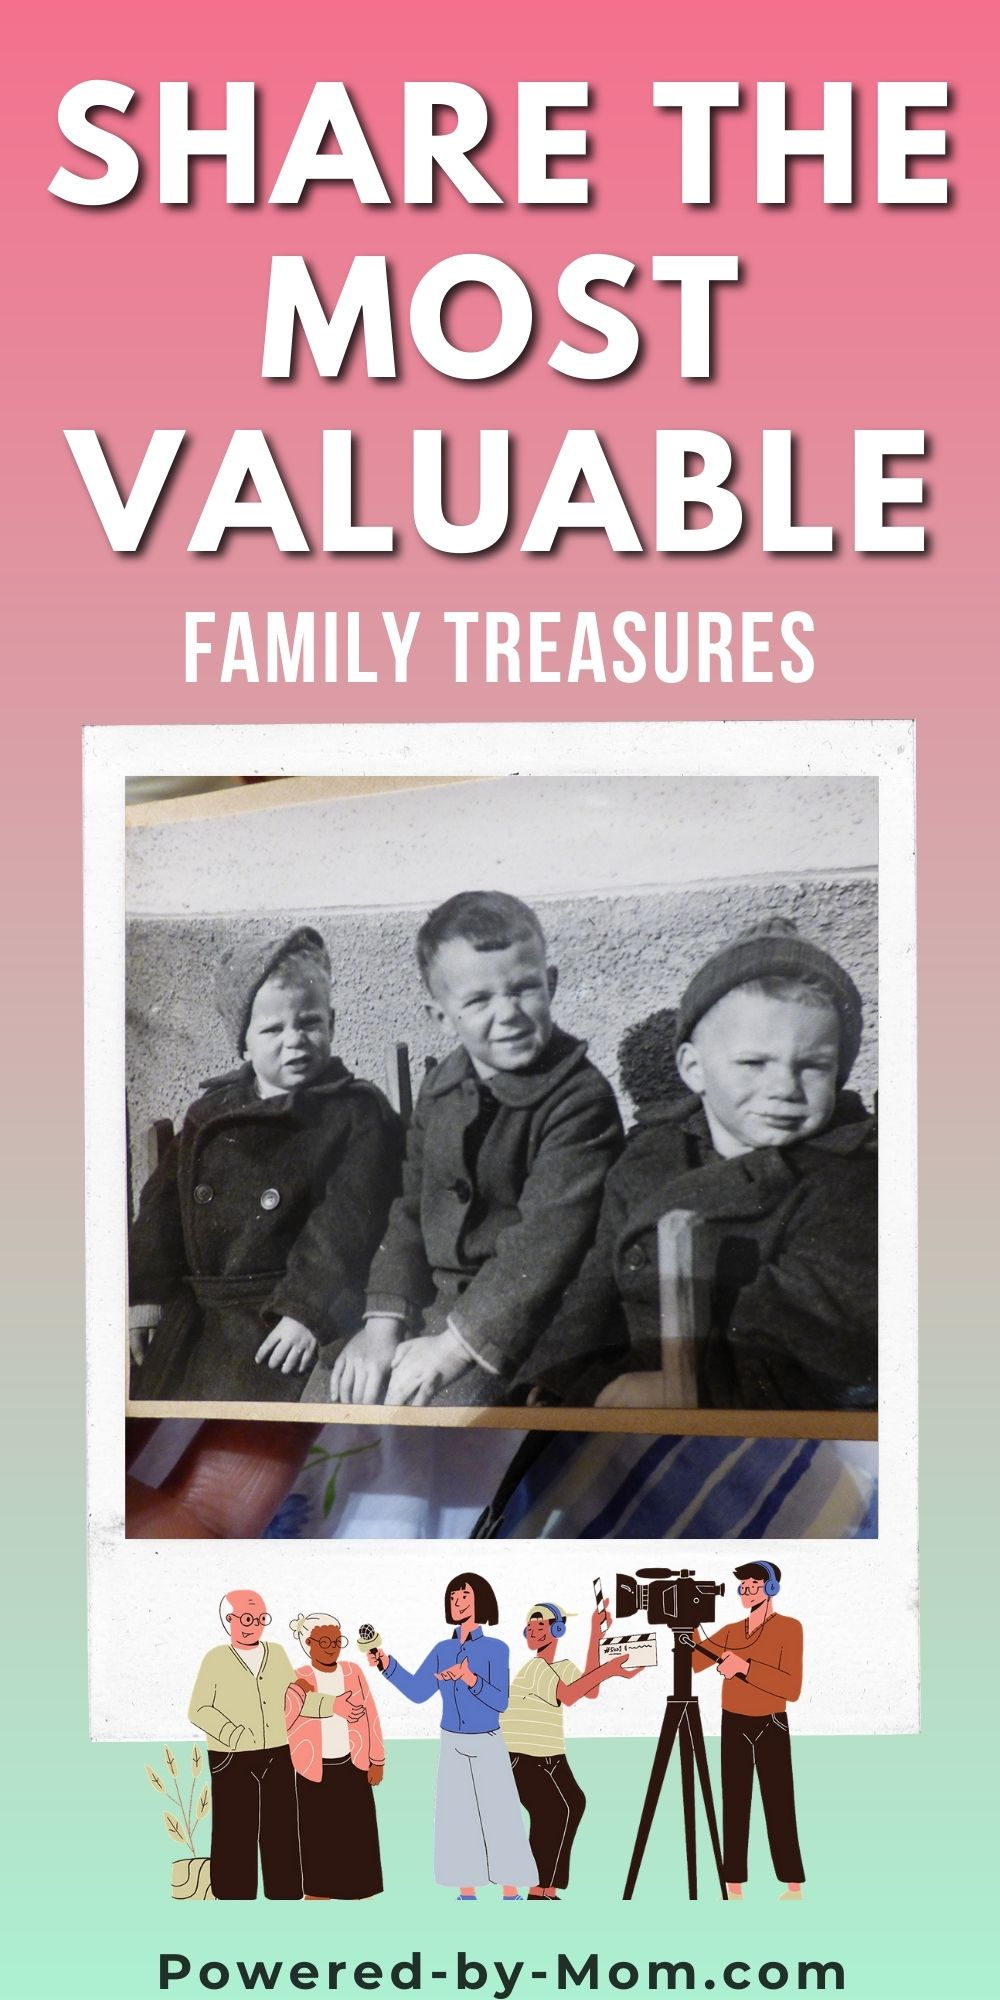 Preserve family treasures in the form of stories and memories from friends and family with this wonderful platform that creates a family keepsake.